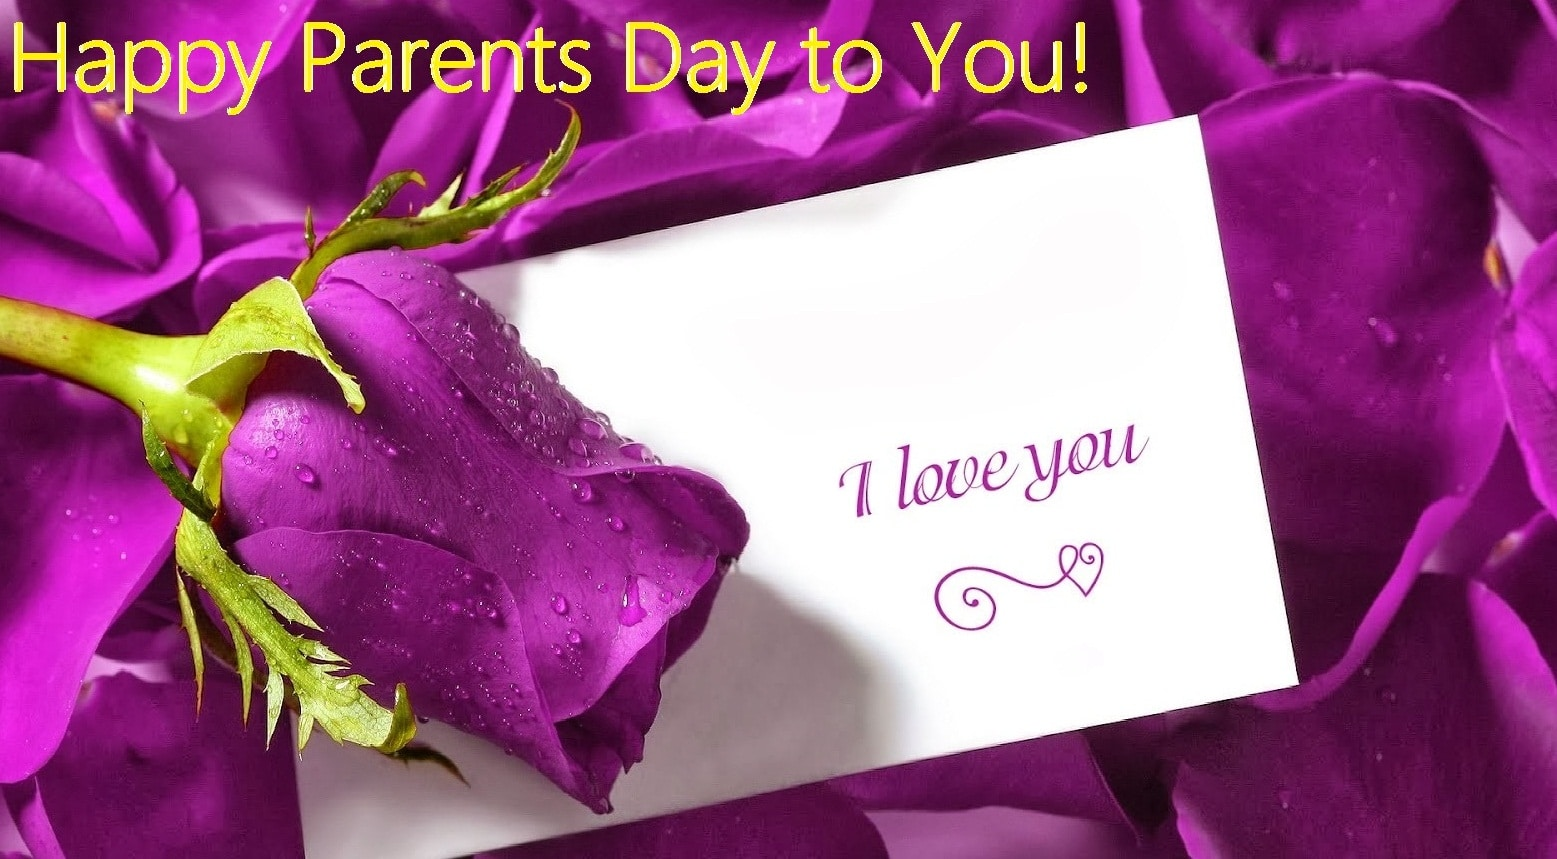 Happy Parents Day 2017 Pic